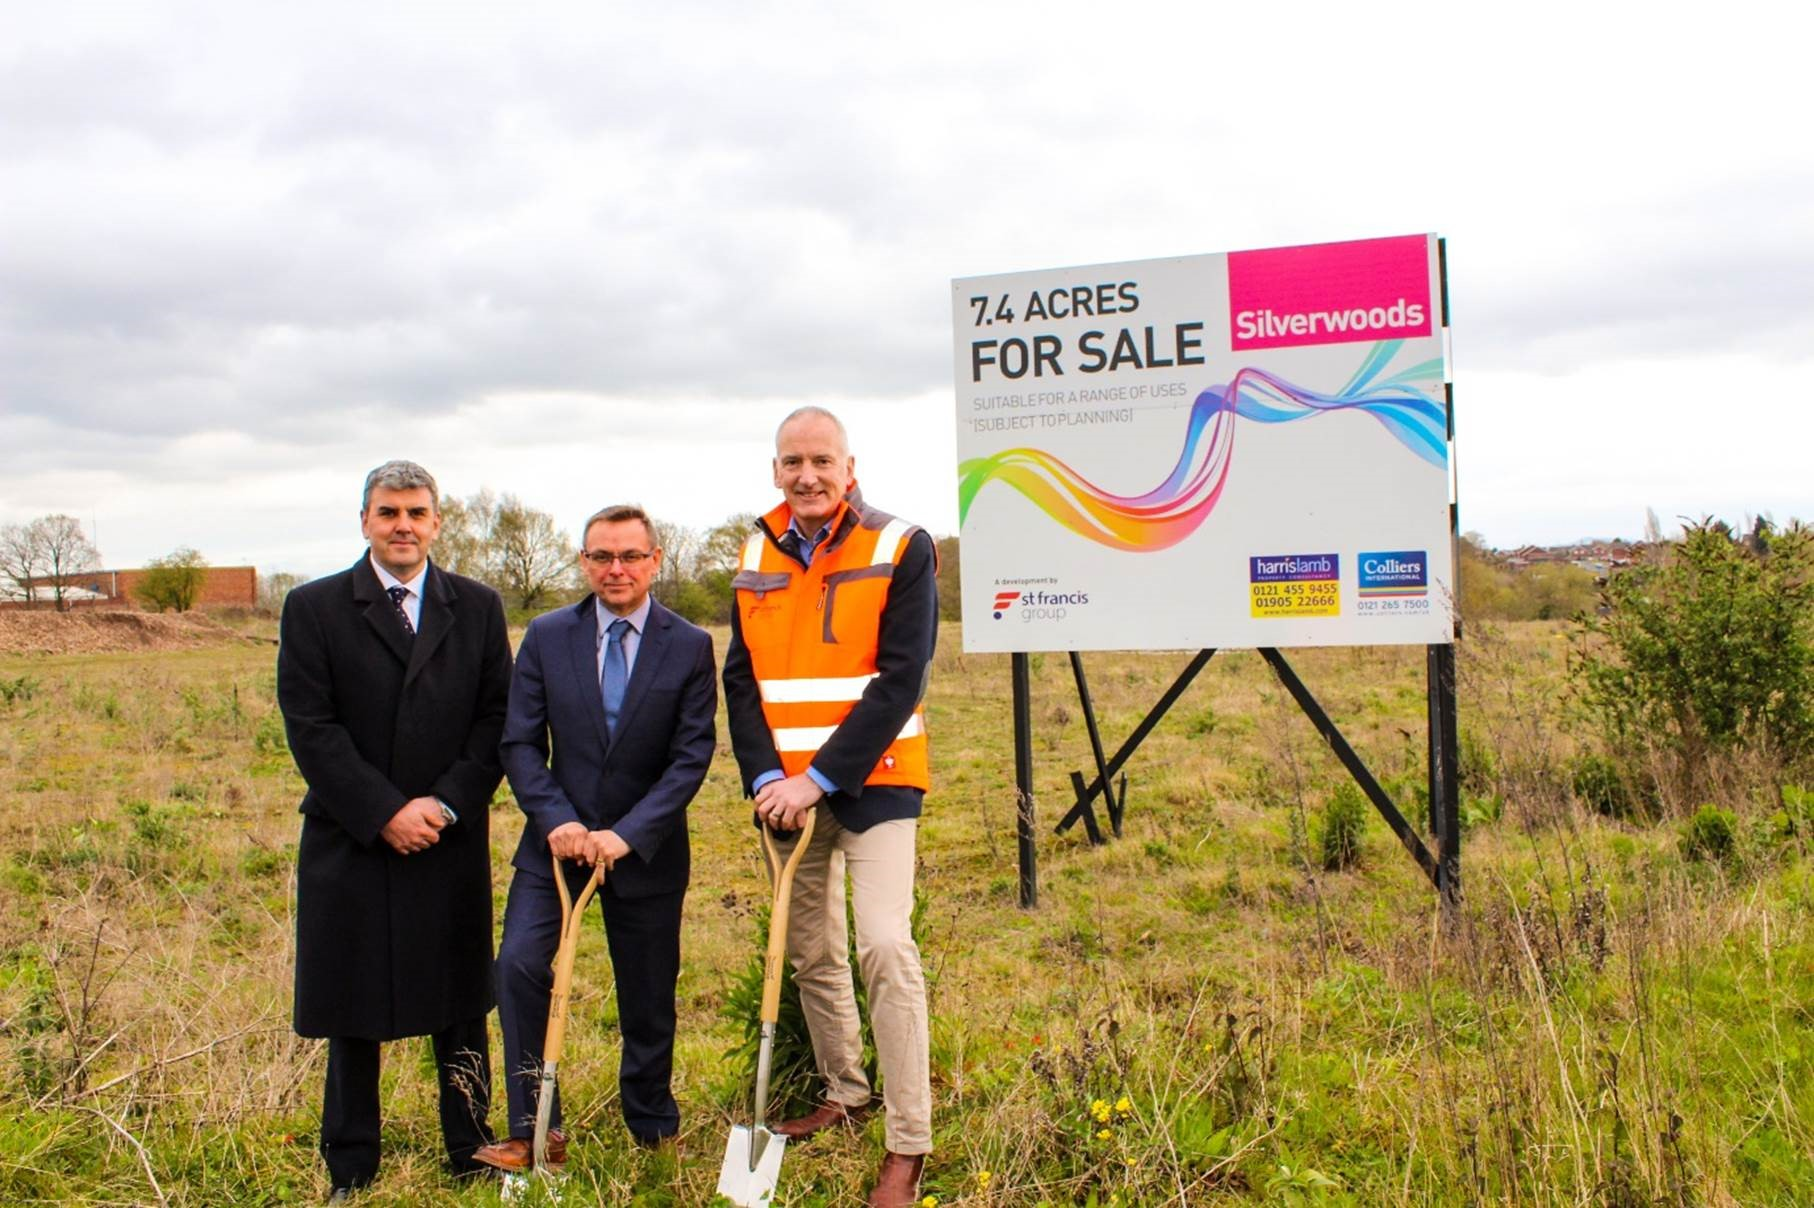 St Francis Group announces further land sale in Kidderminster